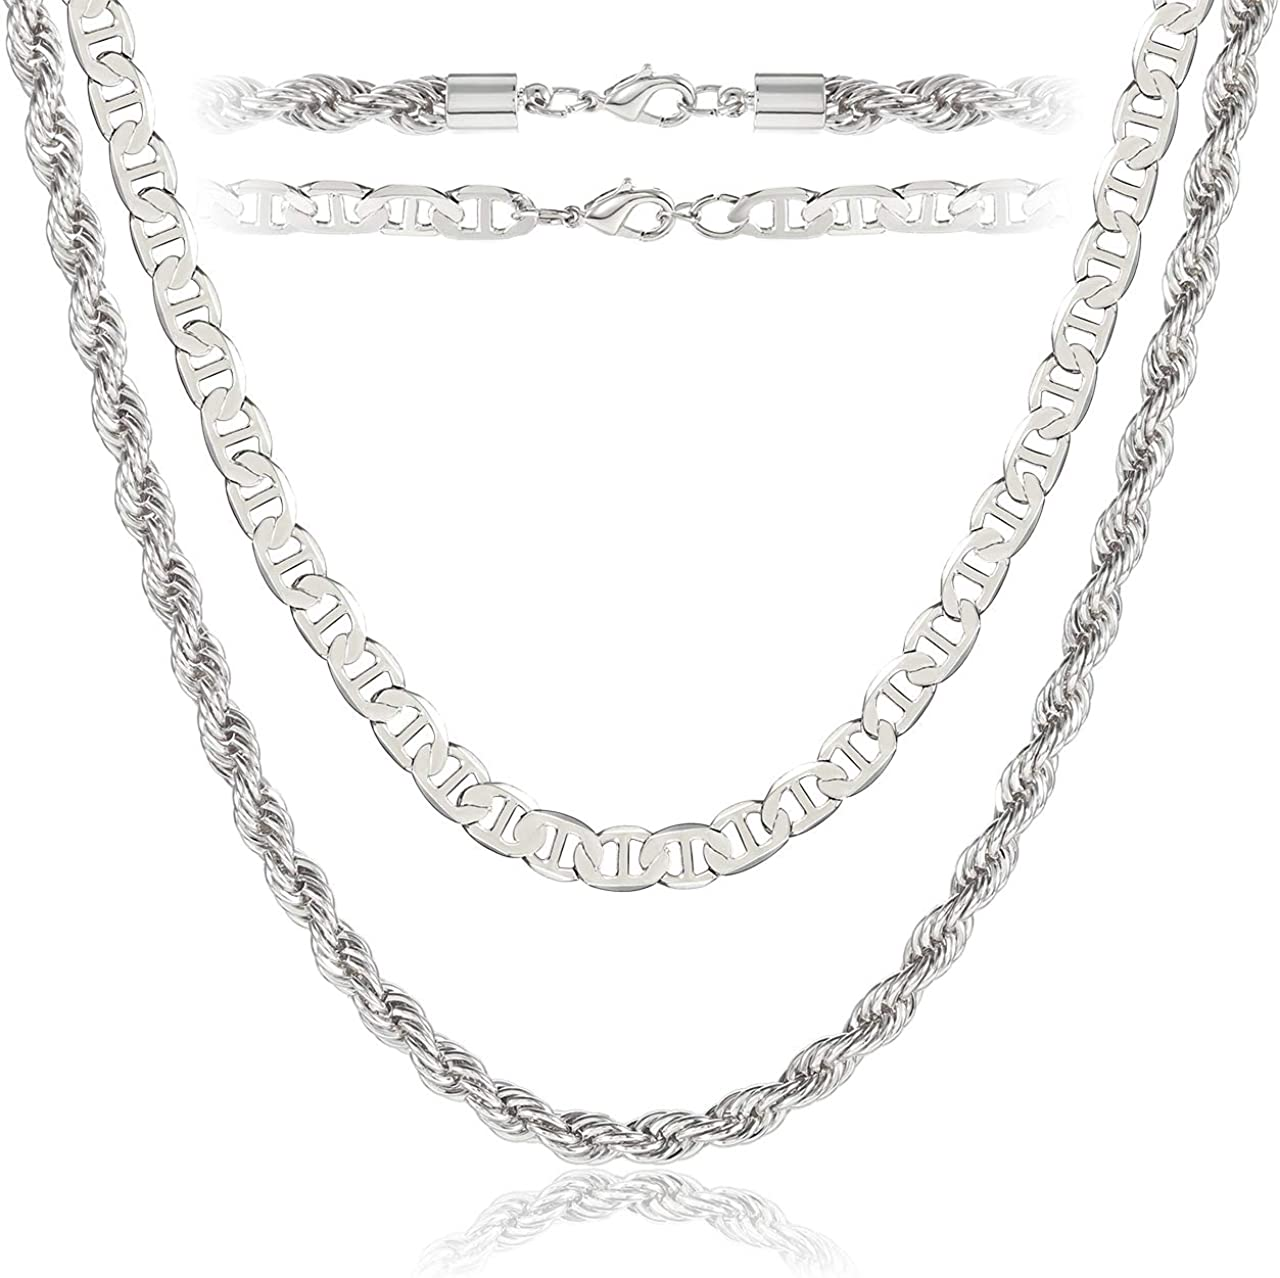 NLCAC 14K Gold Chain Necklace for Women,Layered Gold Mariner Chain and Twist Rope Chain Chunky Choker Collar Necklace 16